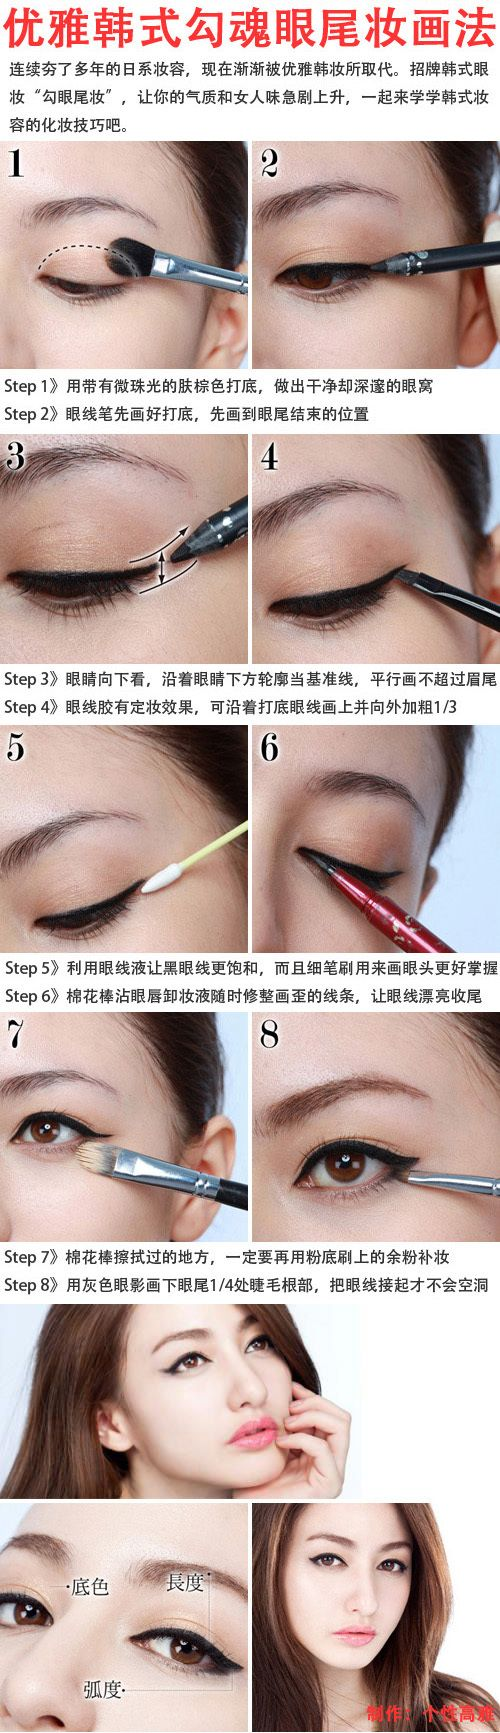 japanese/korean make up tutorial ⭐️ #JoinNerium #DebbieKrug #NeriumKorea www.RadiantFitAndHappy.com